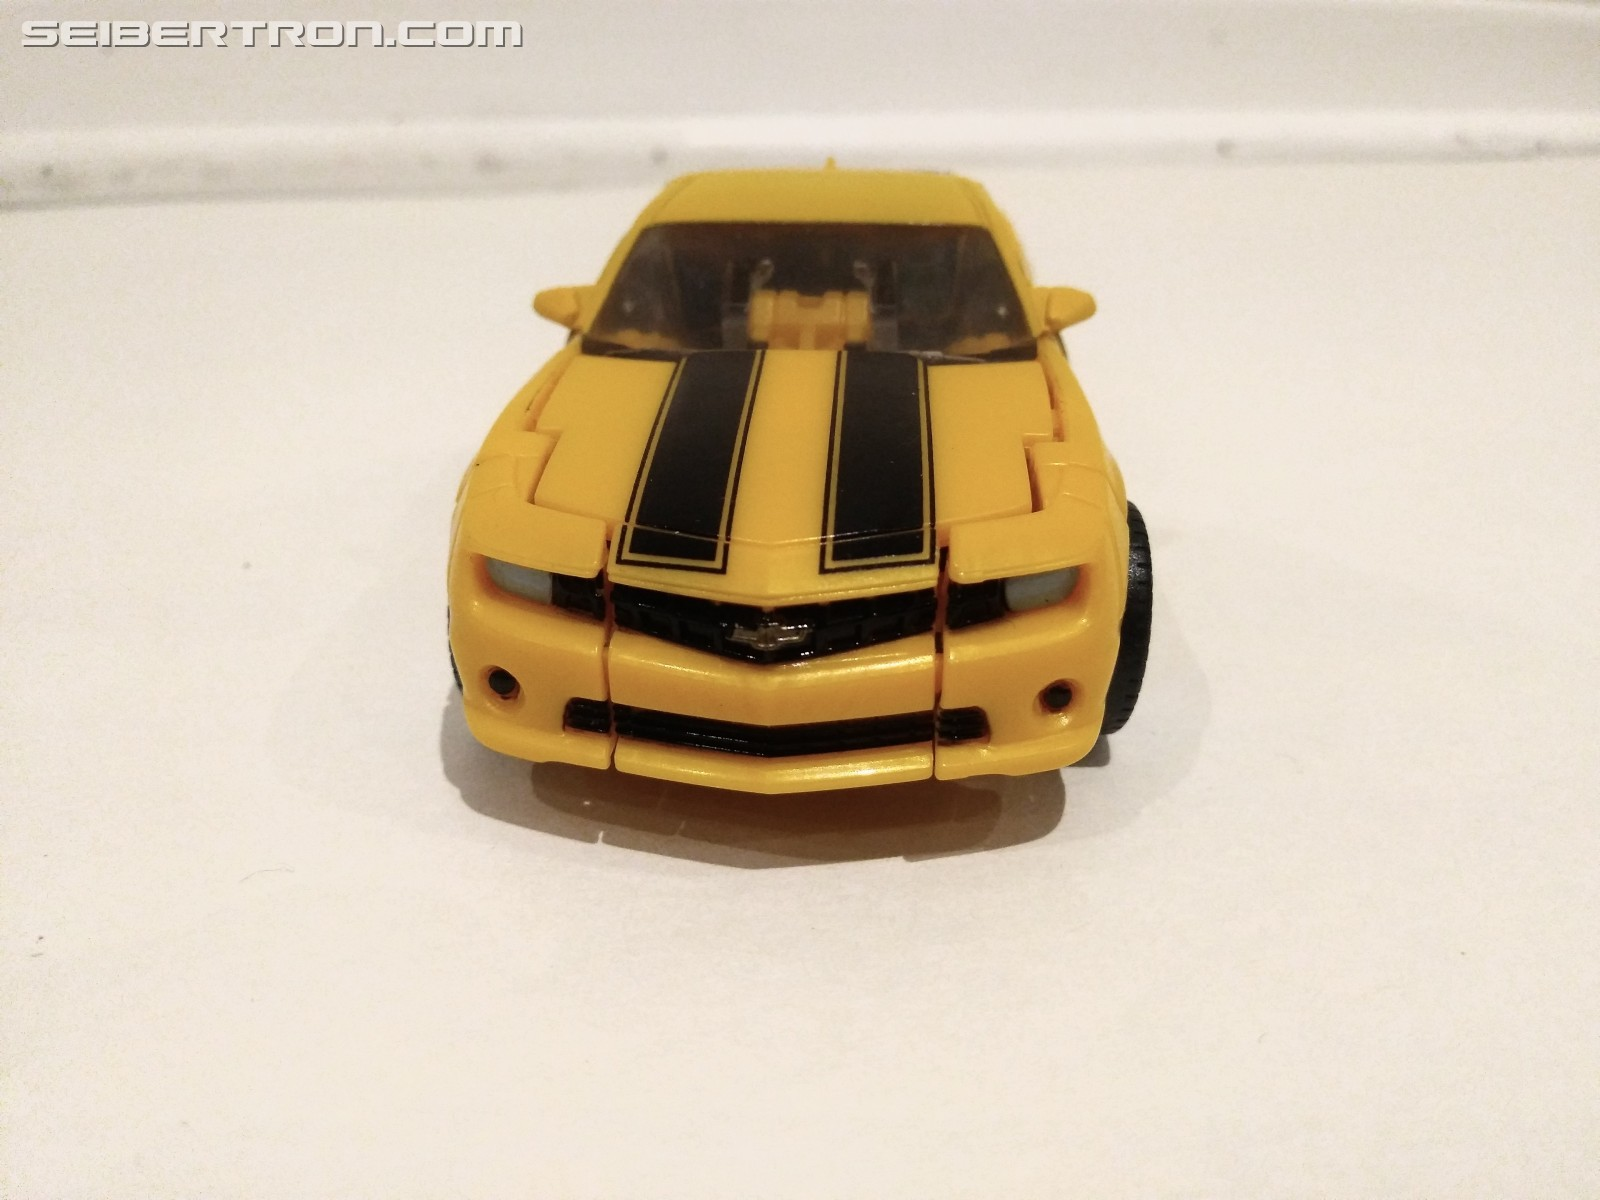 Transformers News: Pictorial Review of Studio Series SS 49 Movie 1 Bumblebee